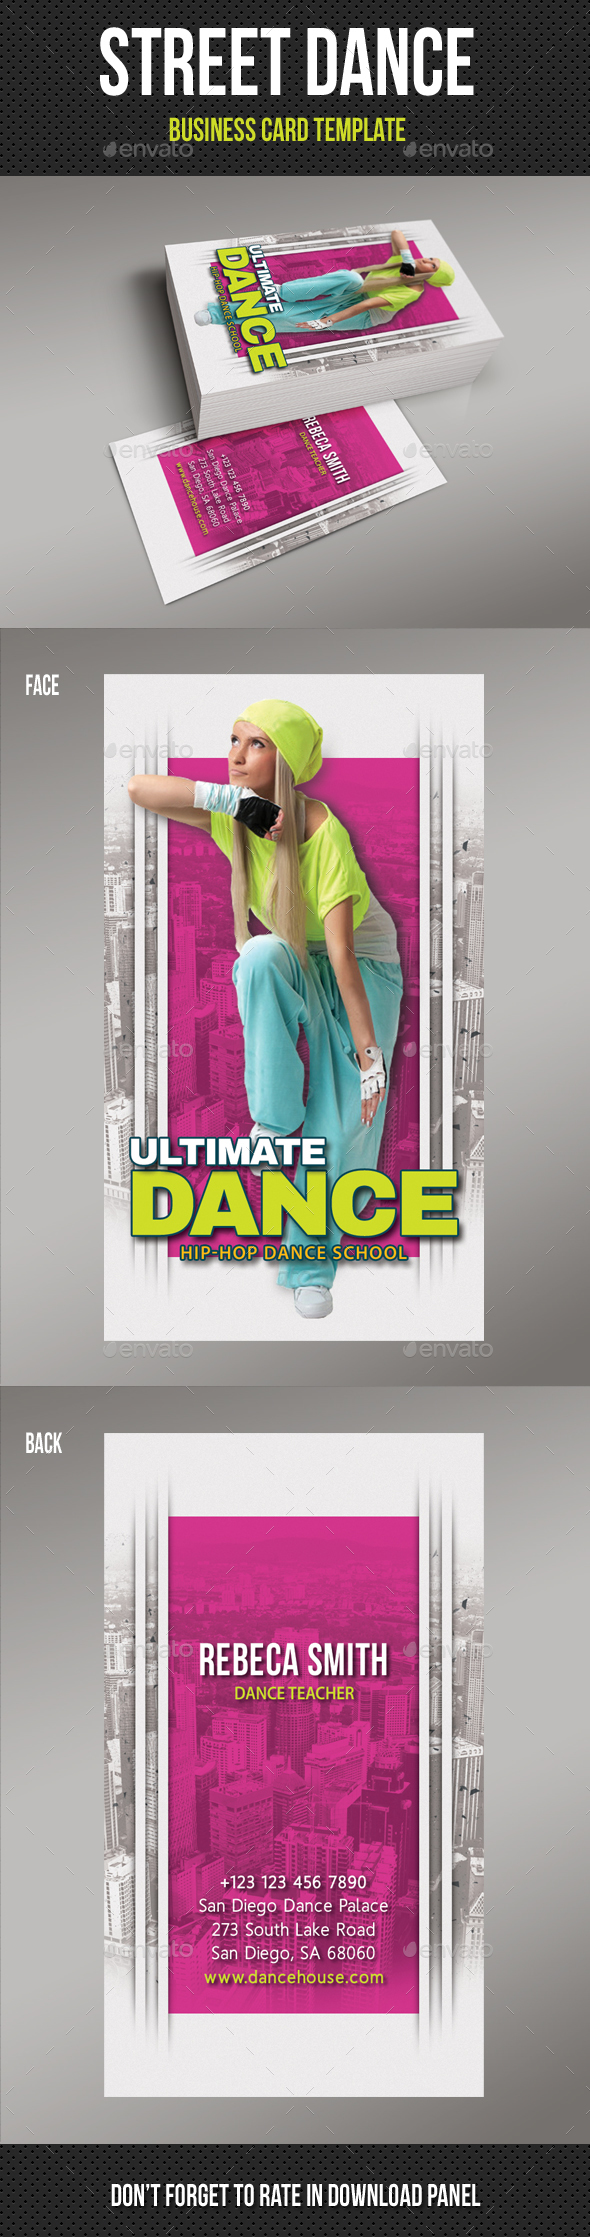 Street Dance School Business Card - Industry Specific Business Cards